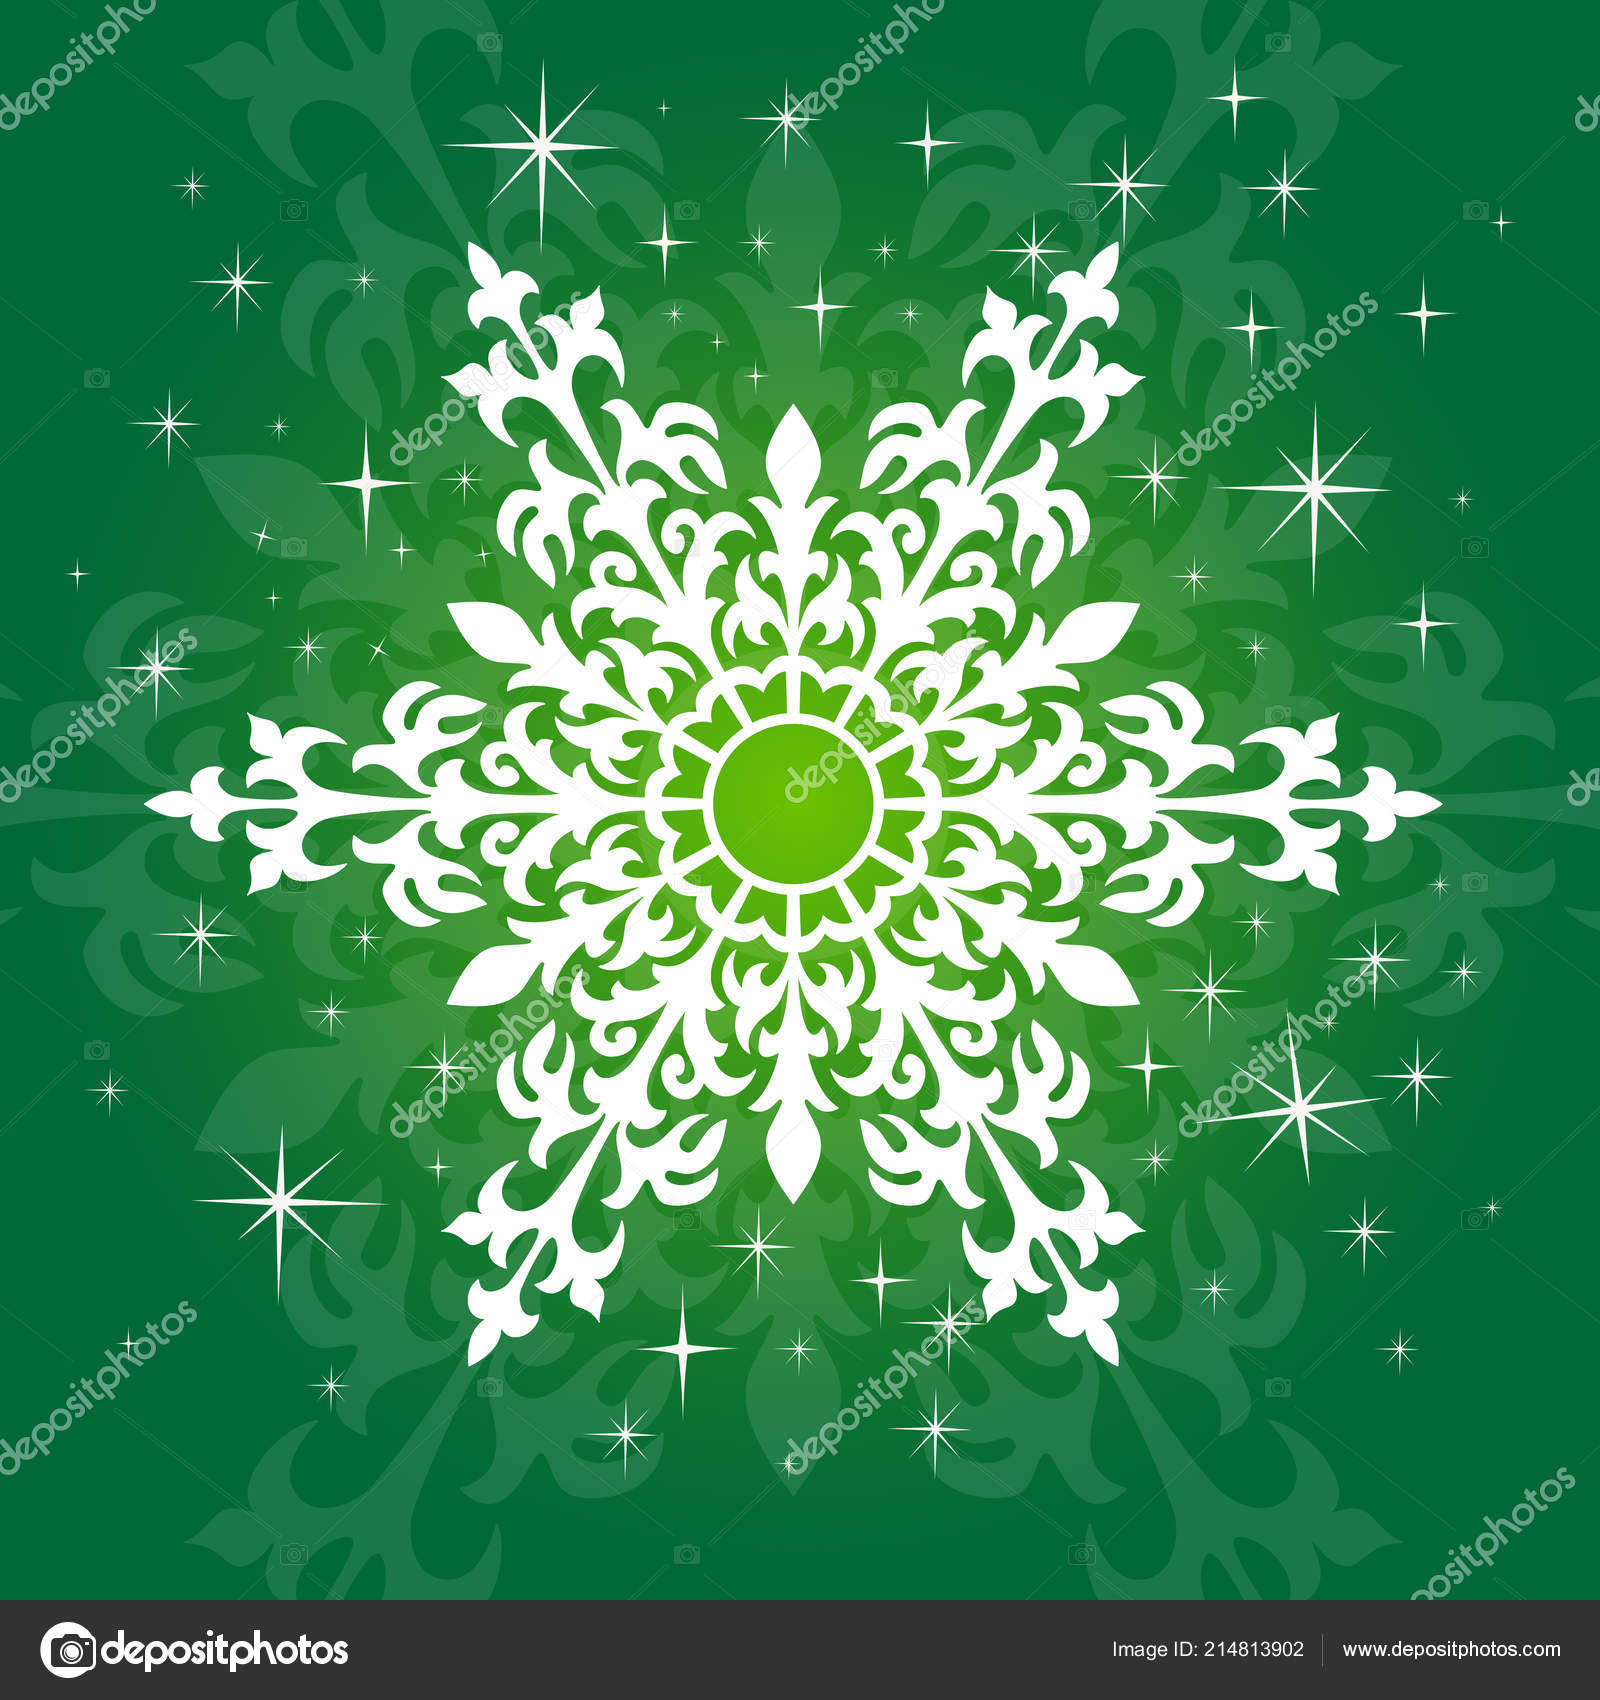 cute lacy snowflake green background template christmas new year holidays stock vector